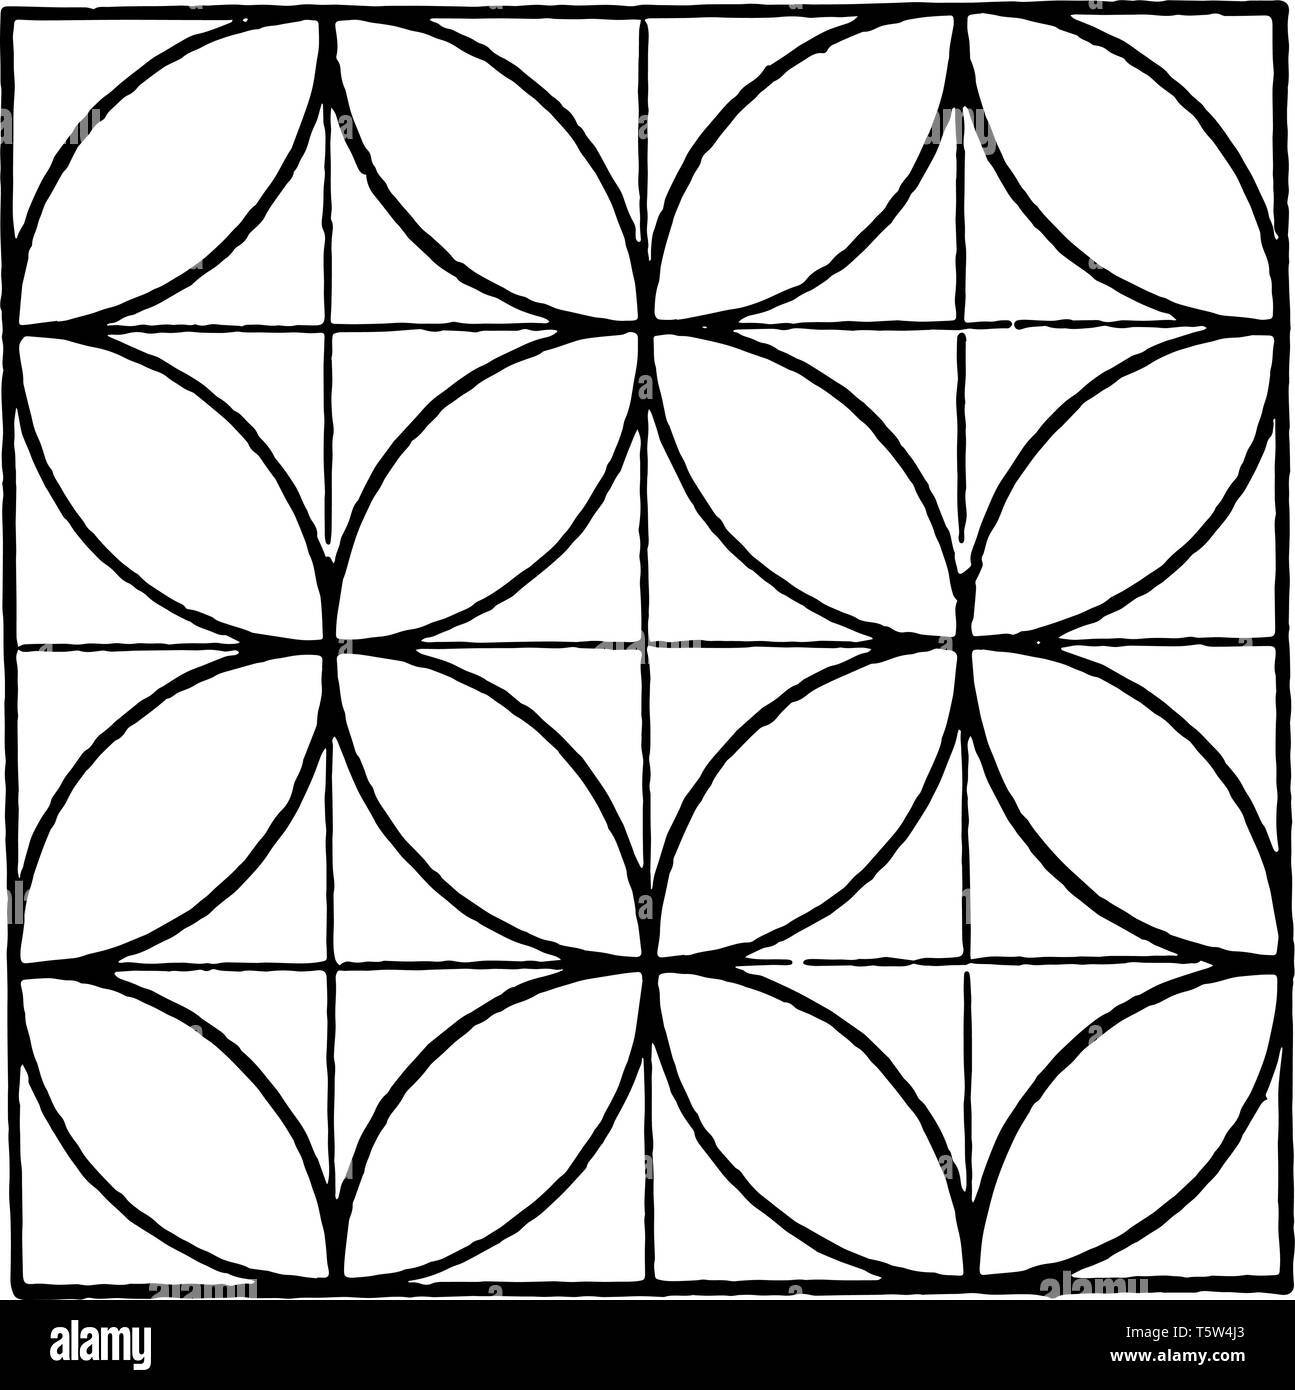 The Image Shows A Beautiful Tiling Design Along With A Repetitive